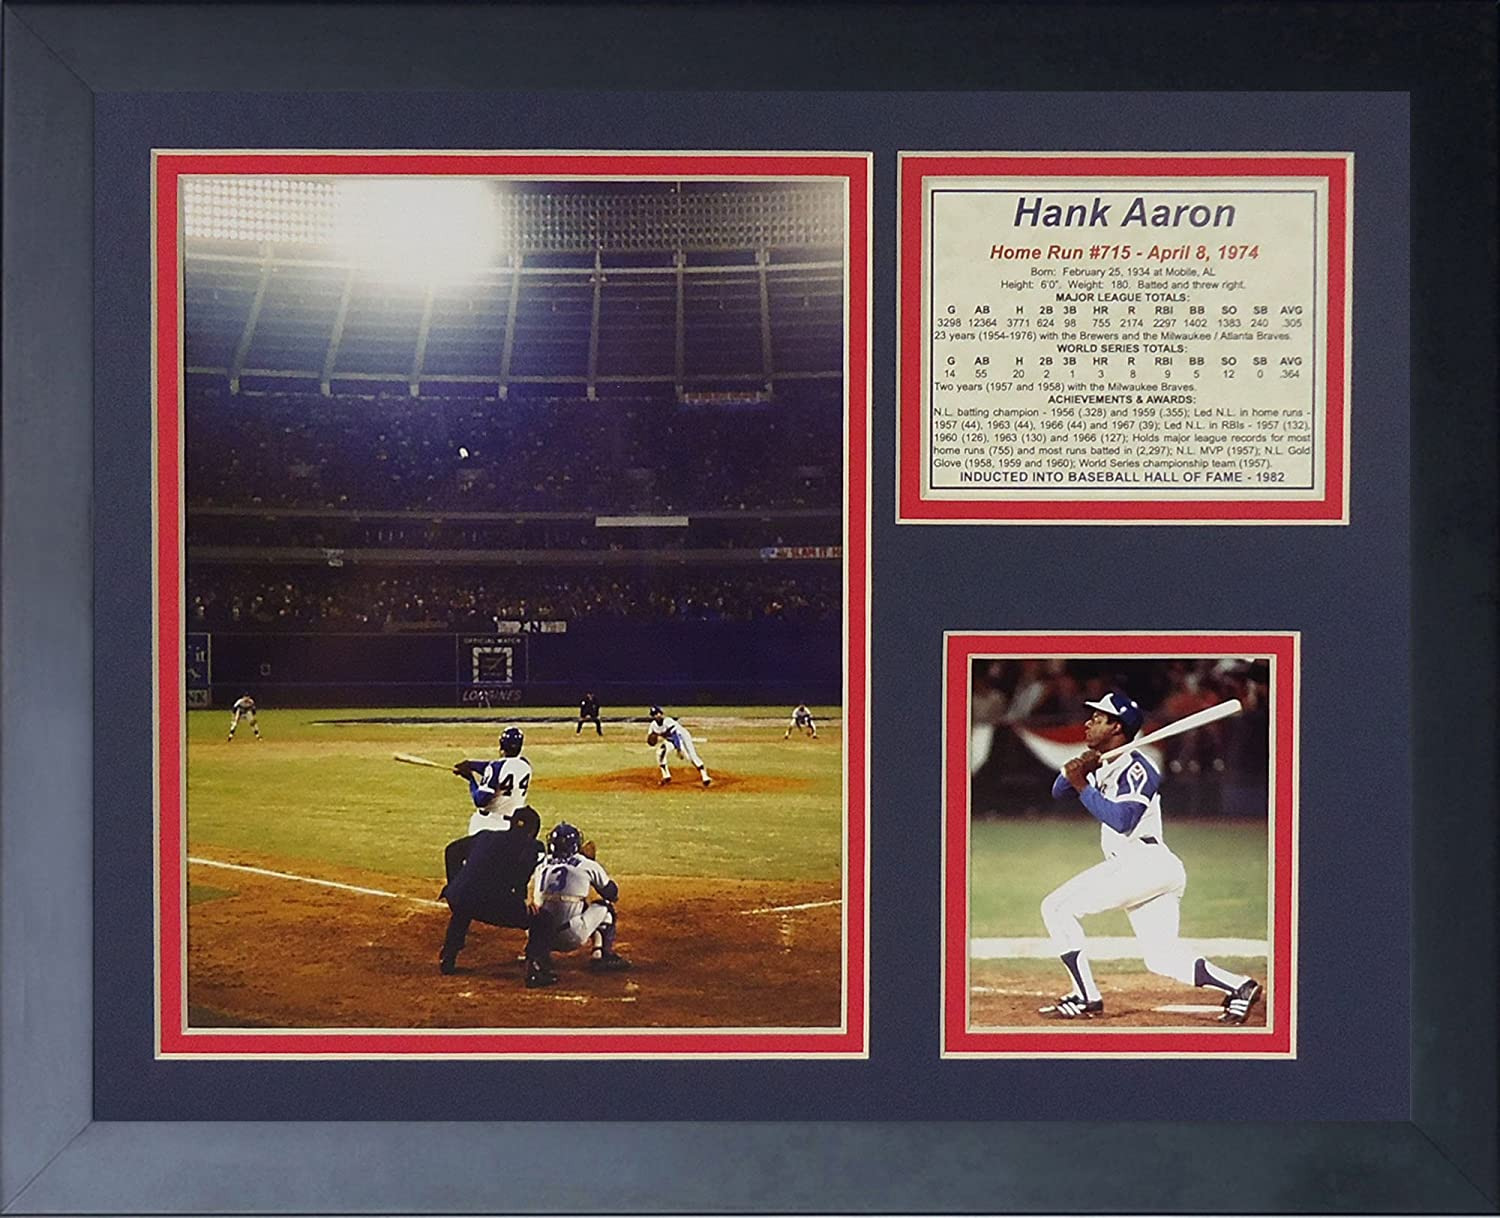 """Hank Aaron - 715th Home Run Color 11"""" x 14"""" Framed Photo Collage by Legends Never Die, Inc."""